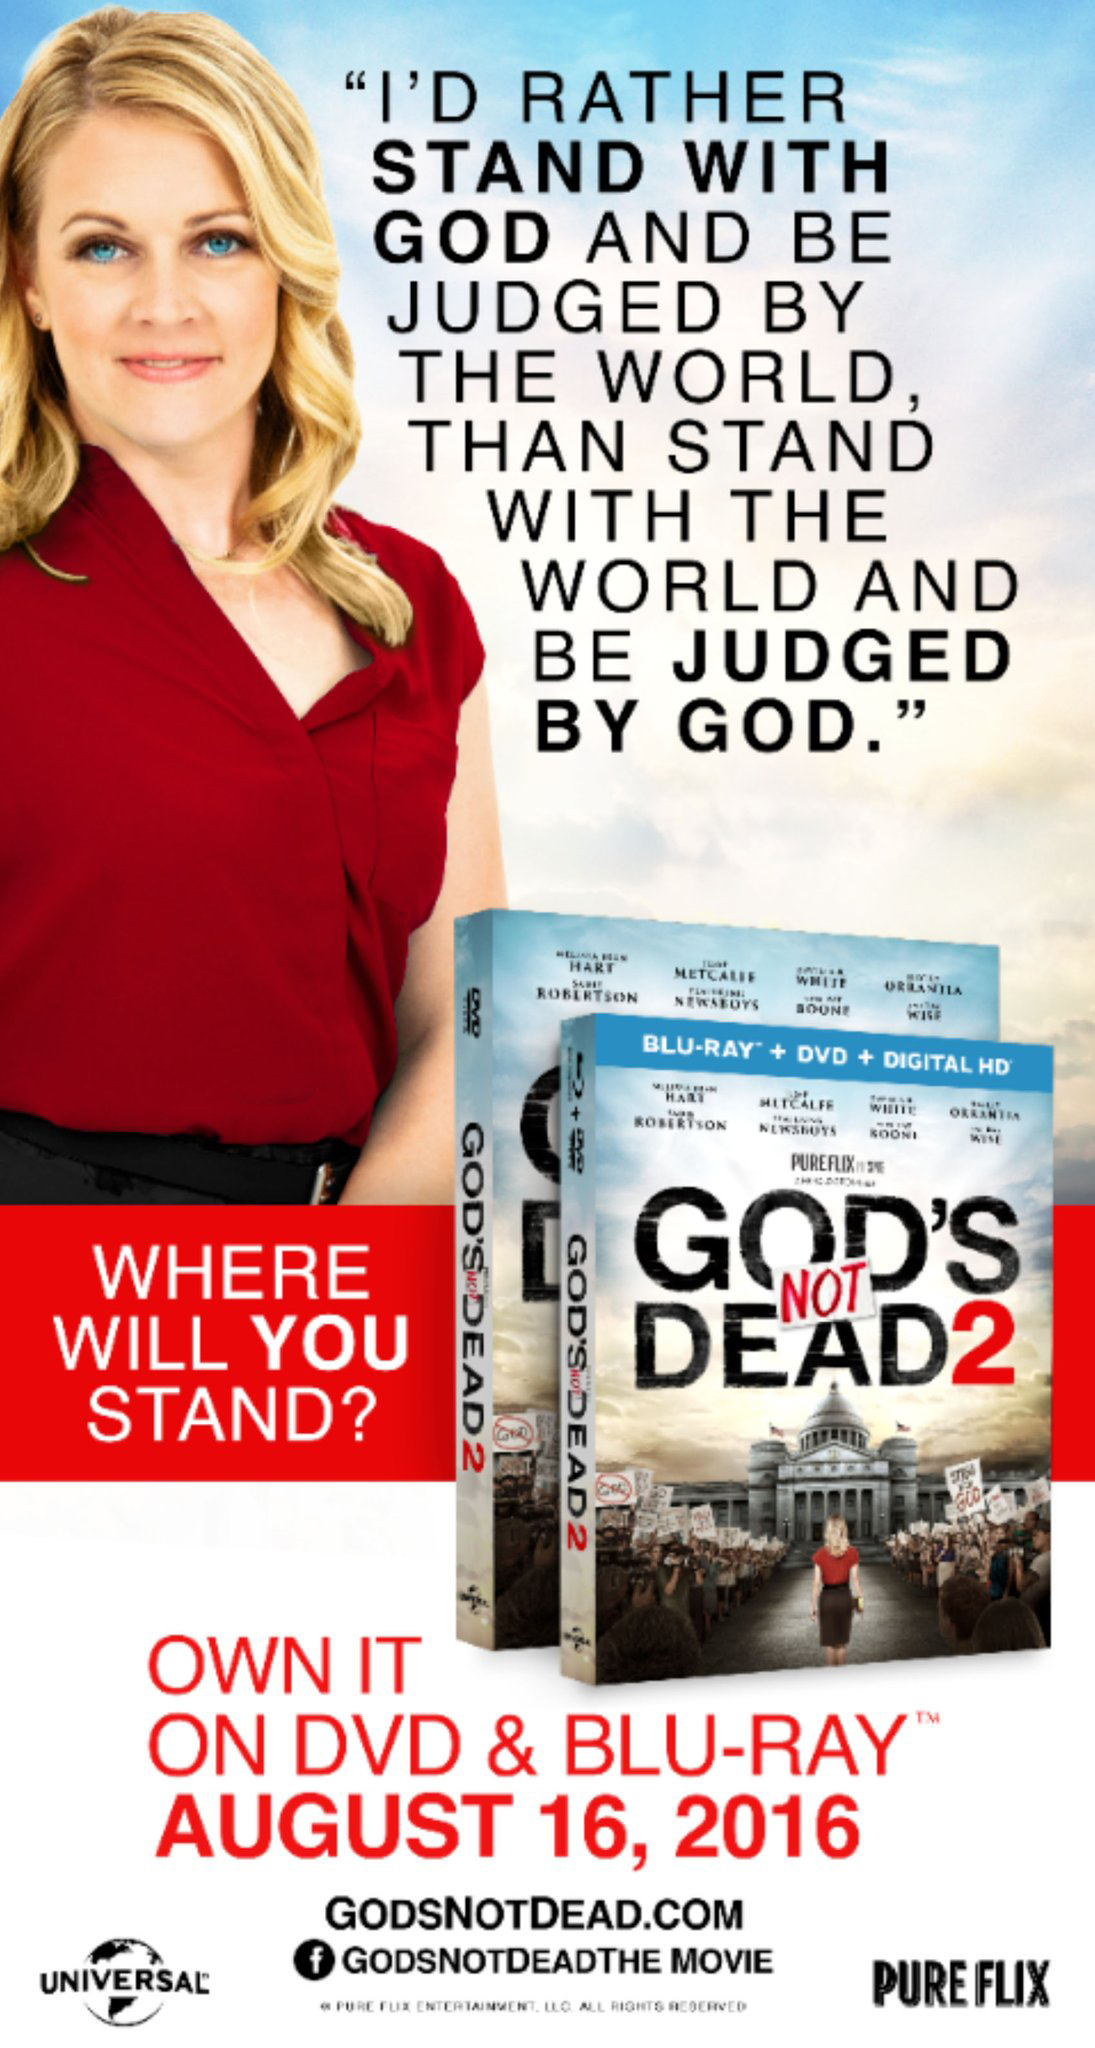 Why This 'God's Not Dead 2' Billboard (With Melissa Joan Hart) Was Nixed From the Republican National Convention